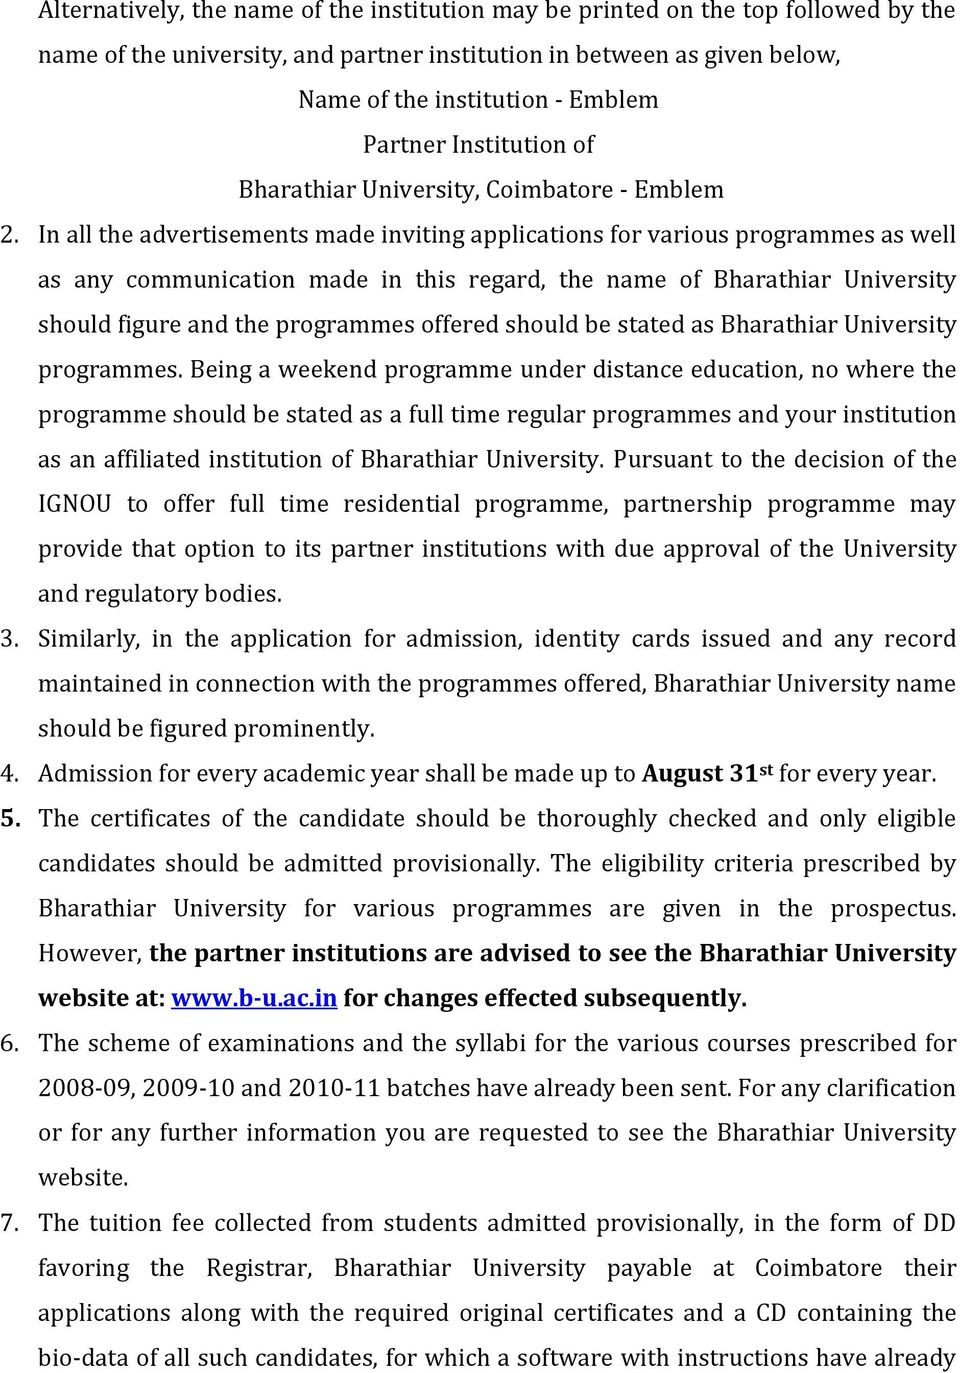 In all the advertisements made inviting applications for various programmes as well as any communication made in this regard, the name of Bharathiar University should figure and the programmes